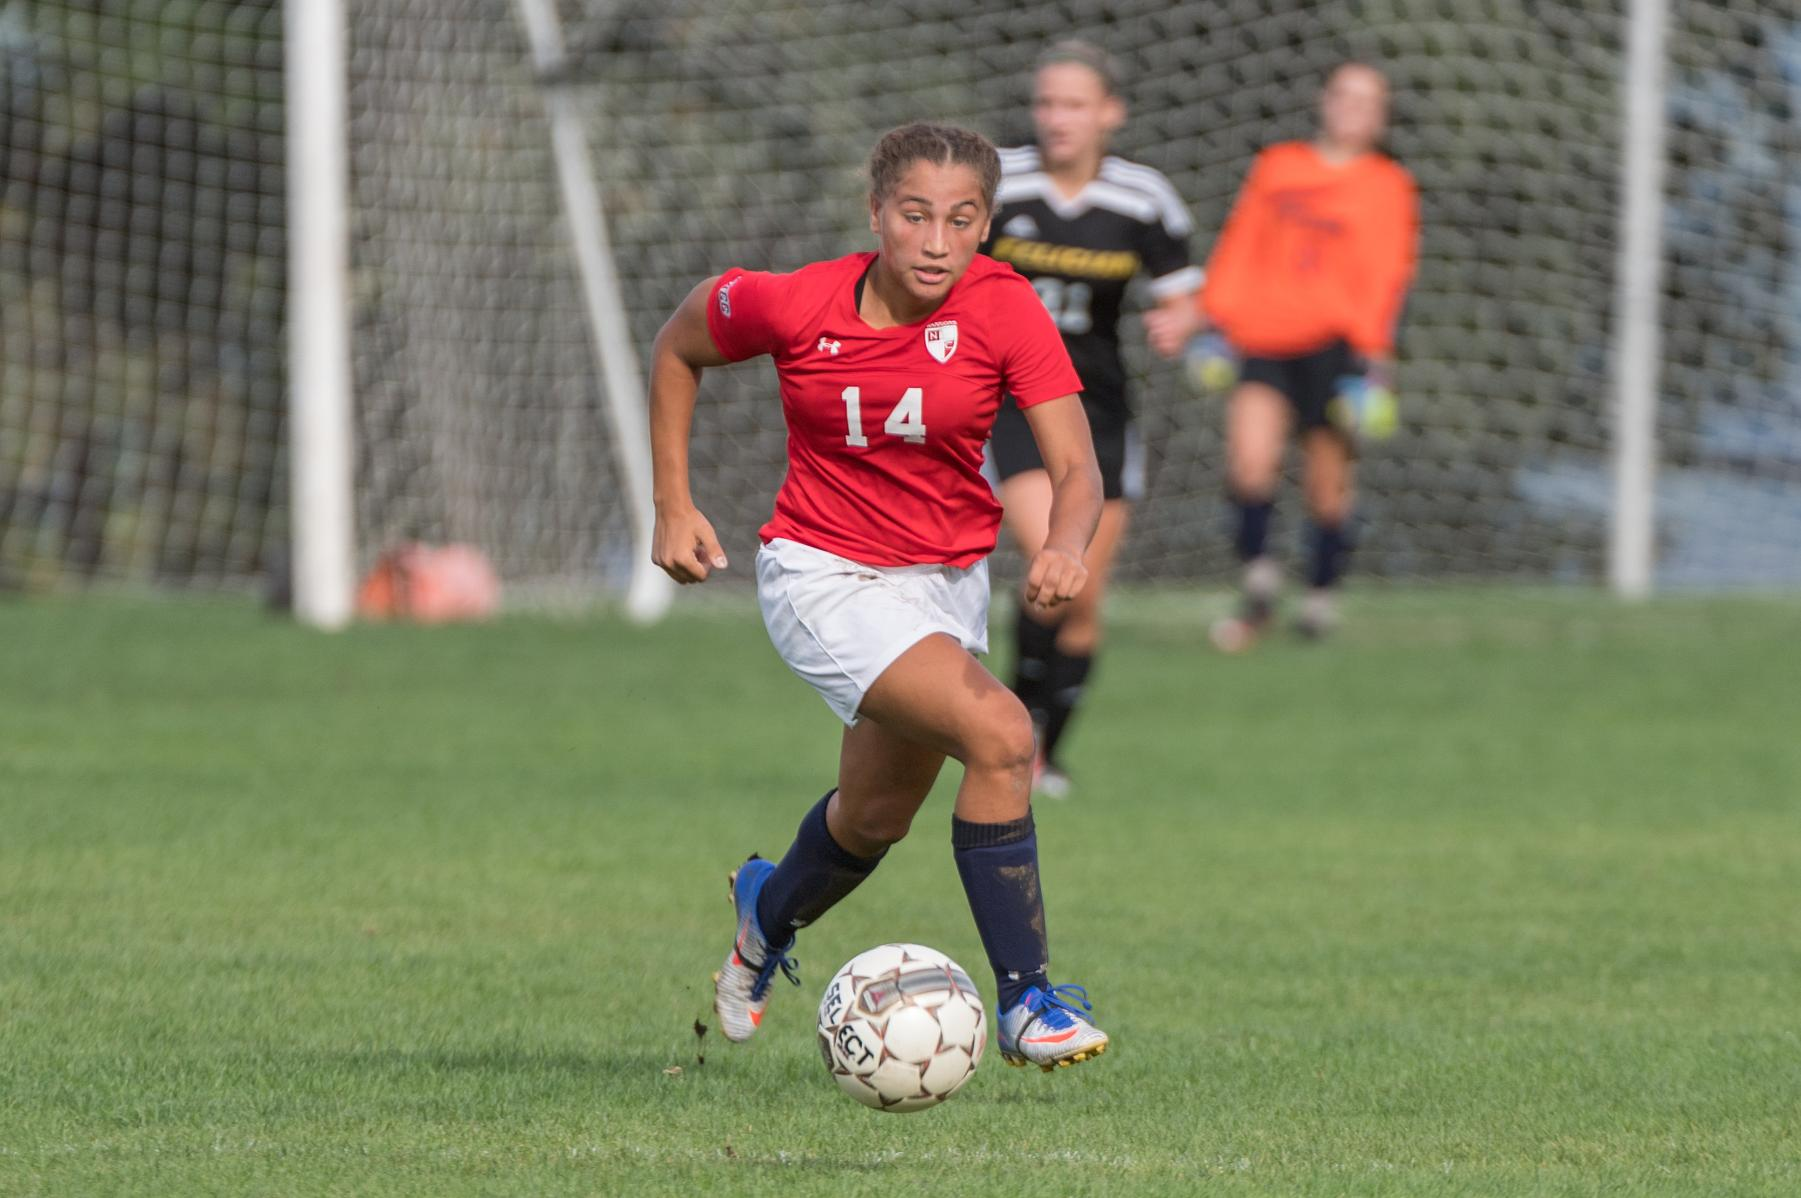 Women's Soccer falls to Lions, 1-4